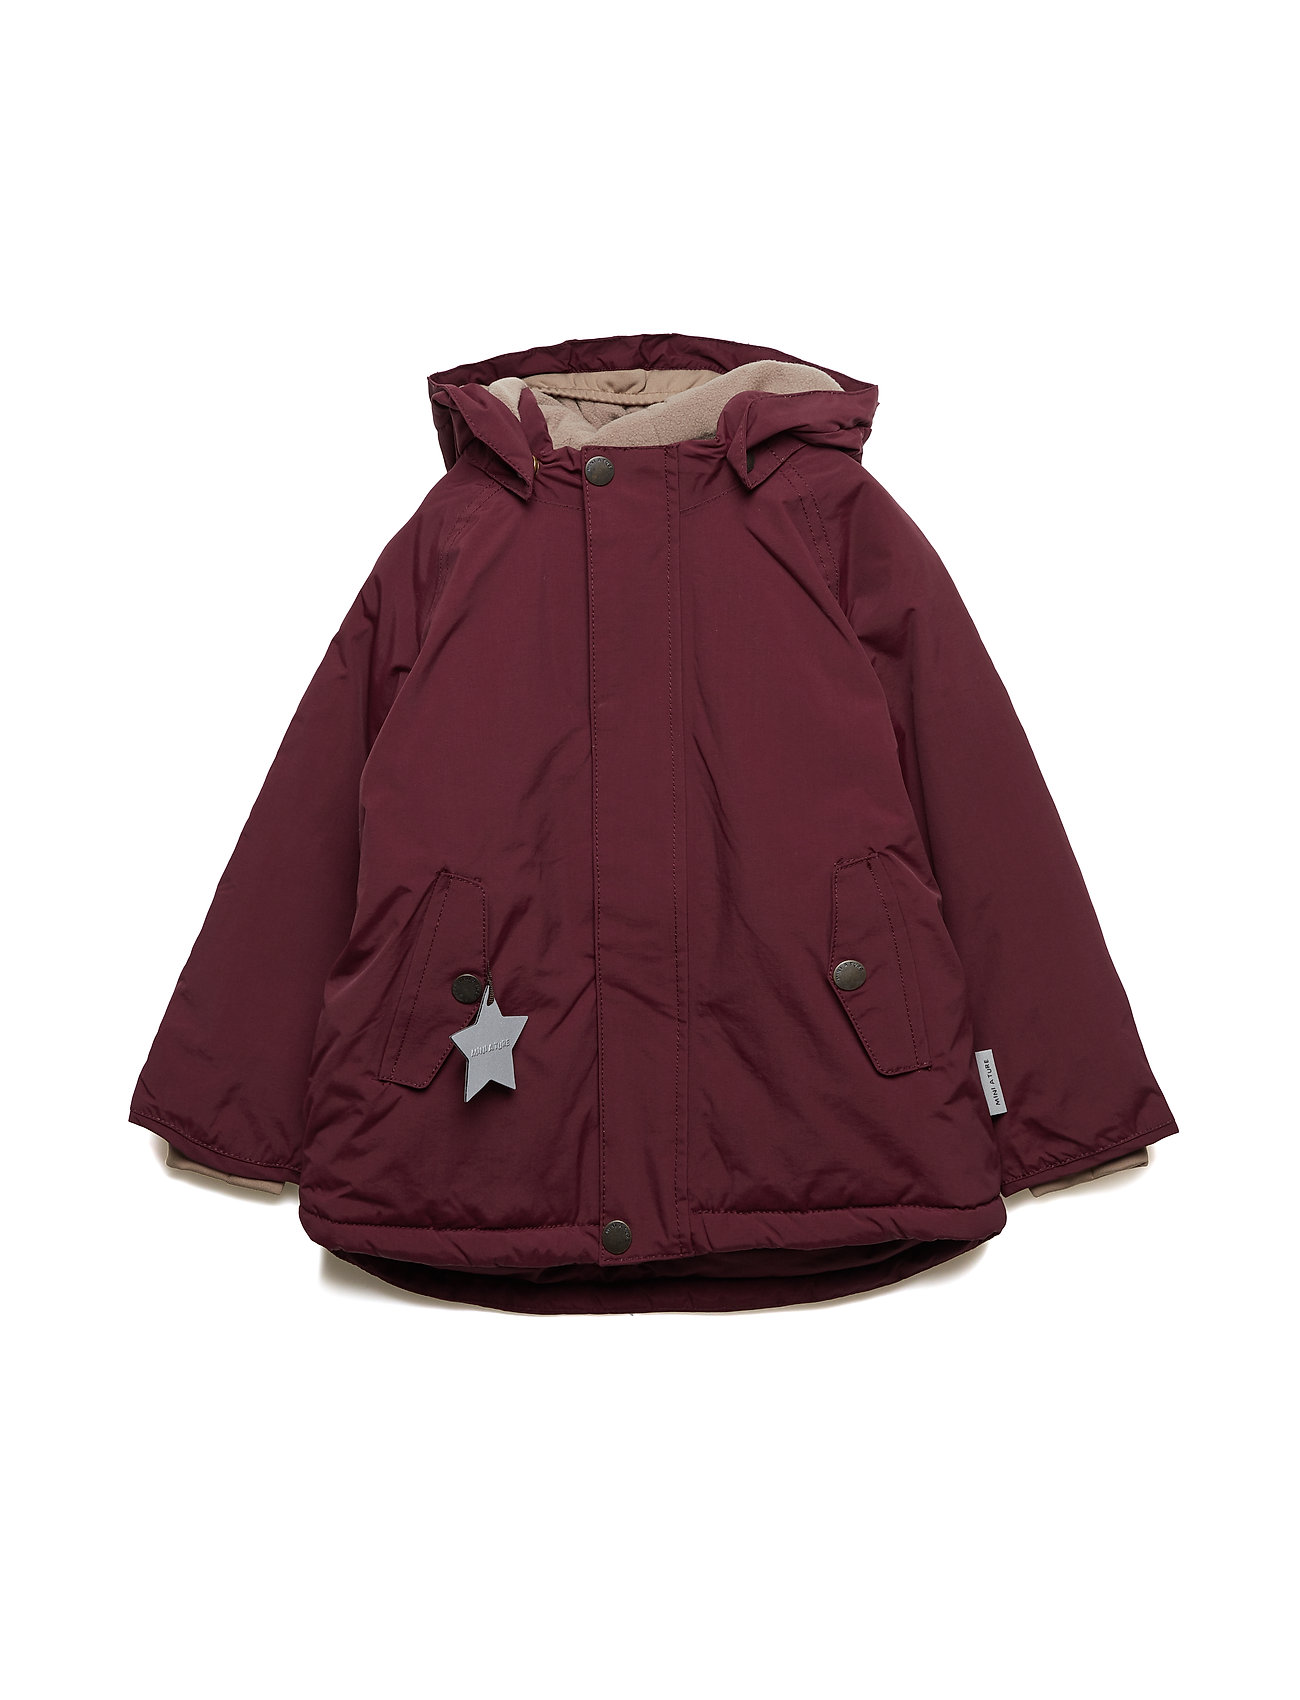 Mini A Ture Wally Jacket, M - WINETASTING PLUM